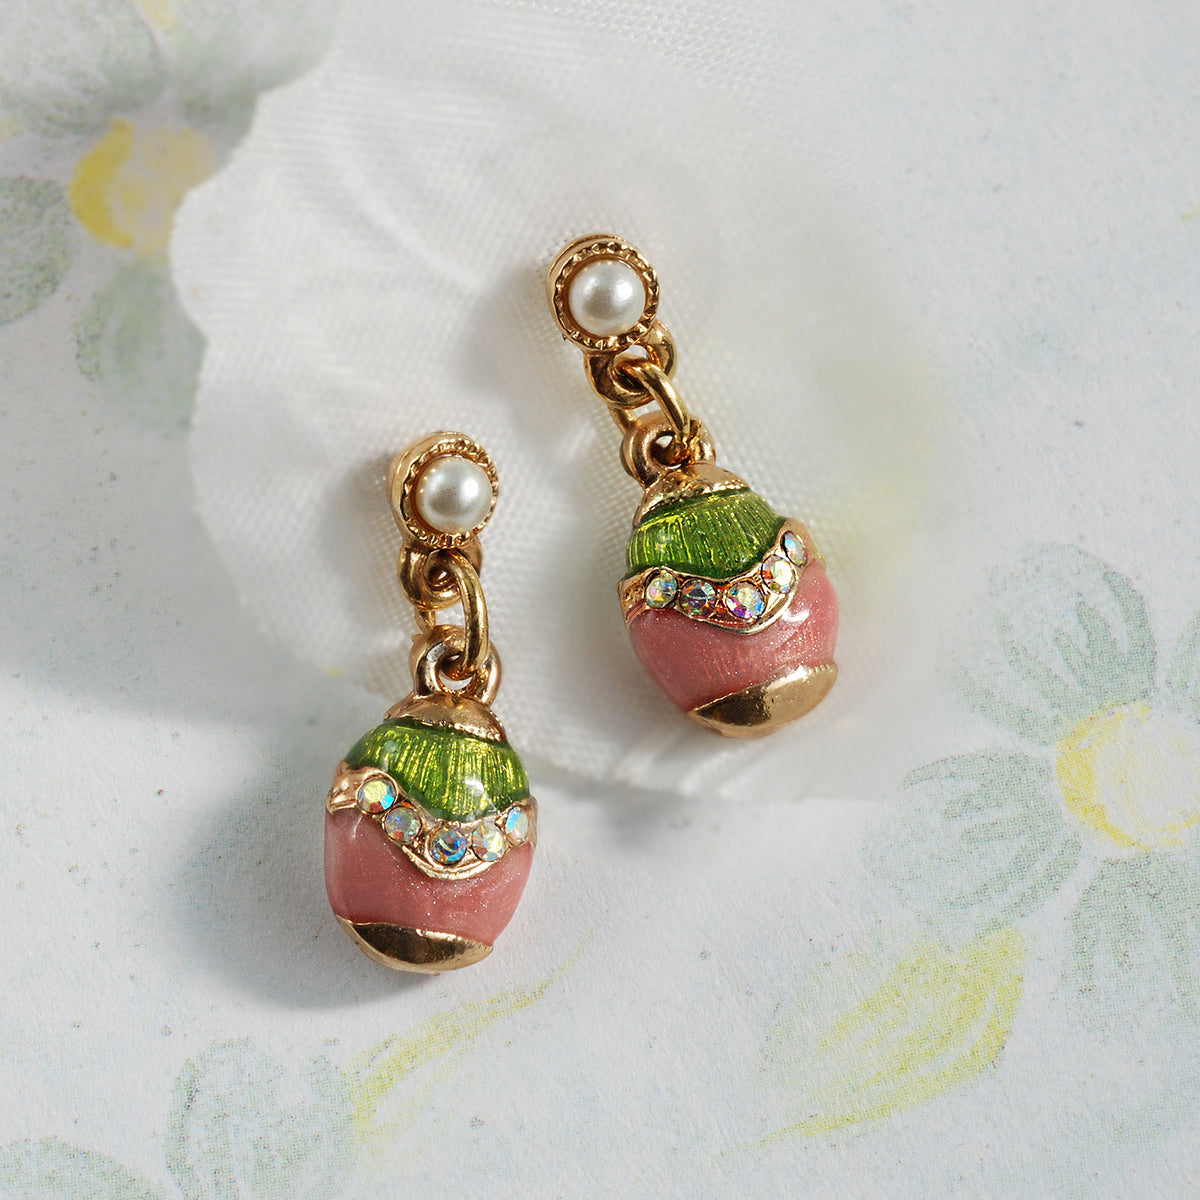 Miniature Enamel Easter Egg Earrings E201